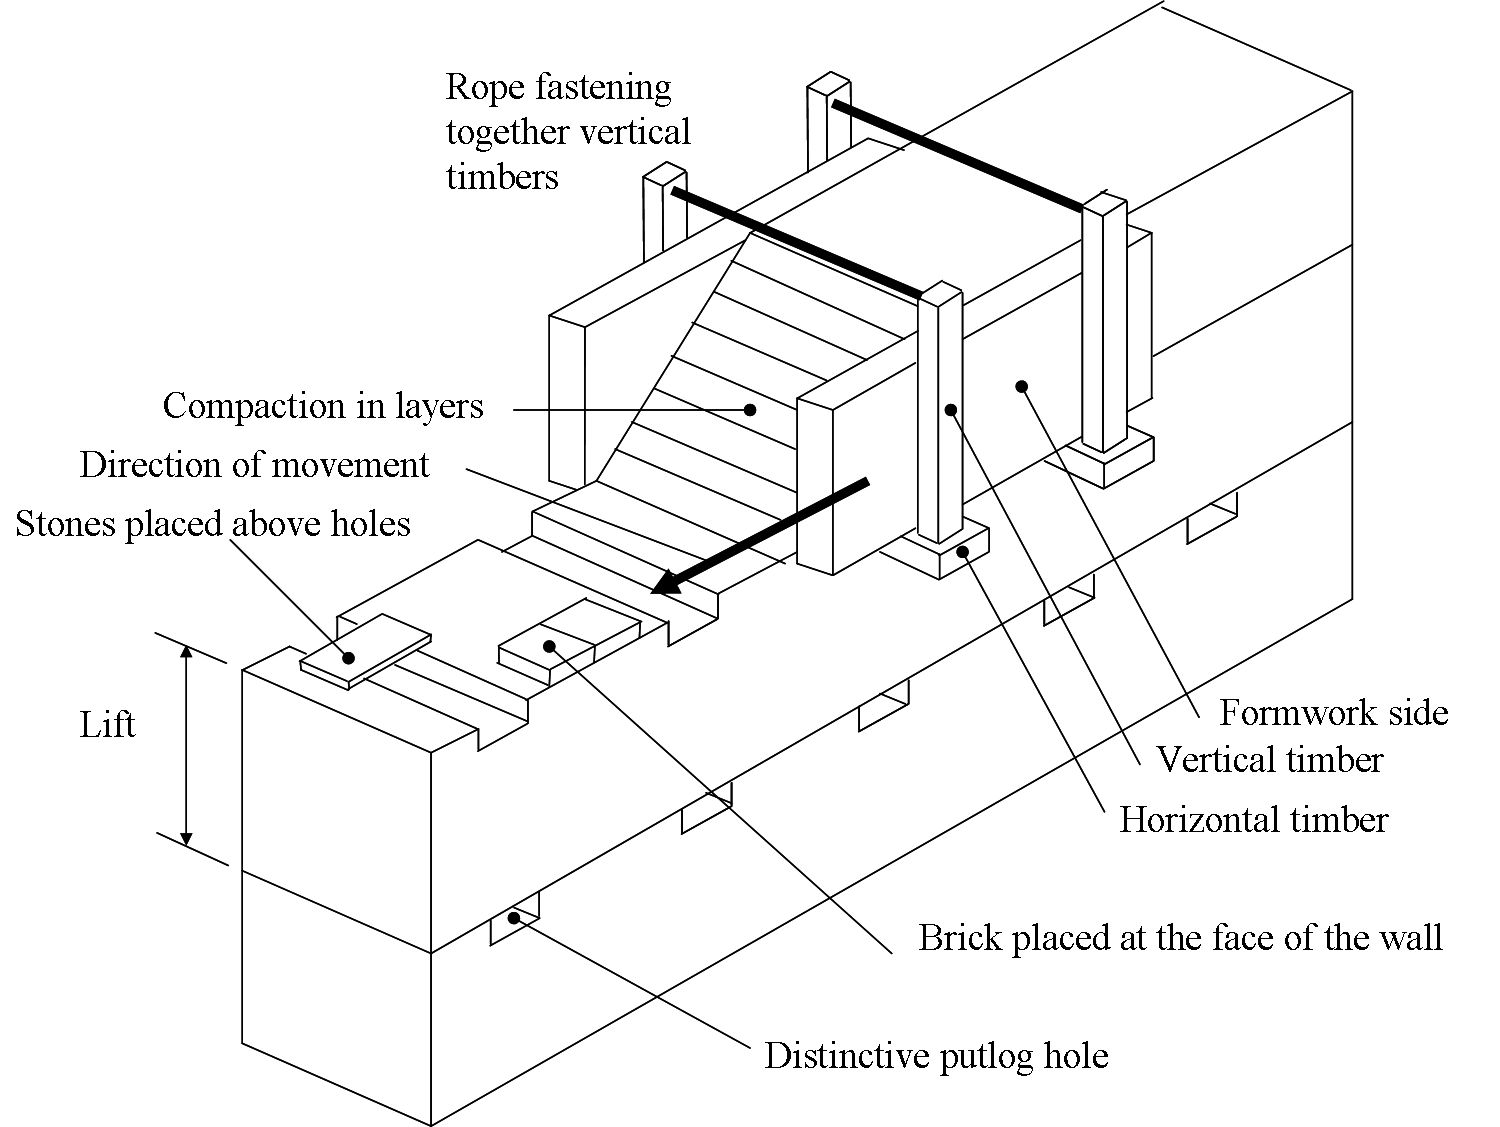 Rammed Earth Wall Construction Diagram